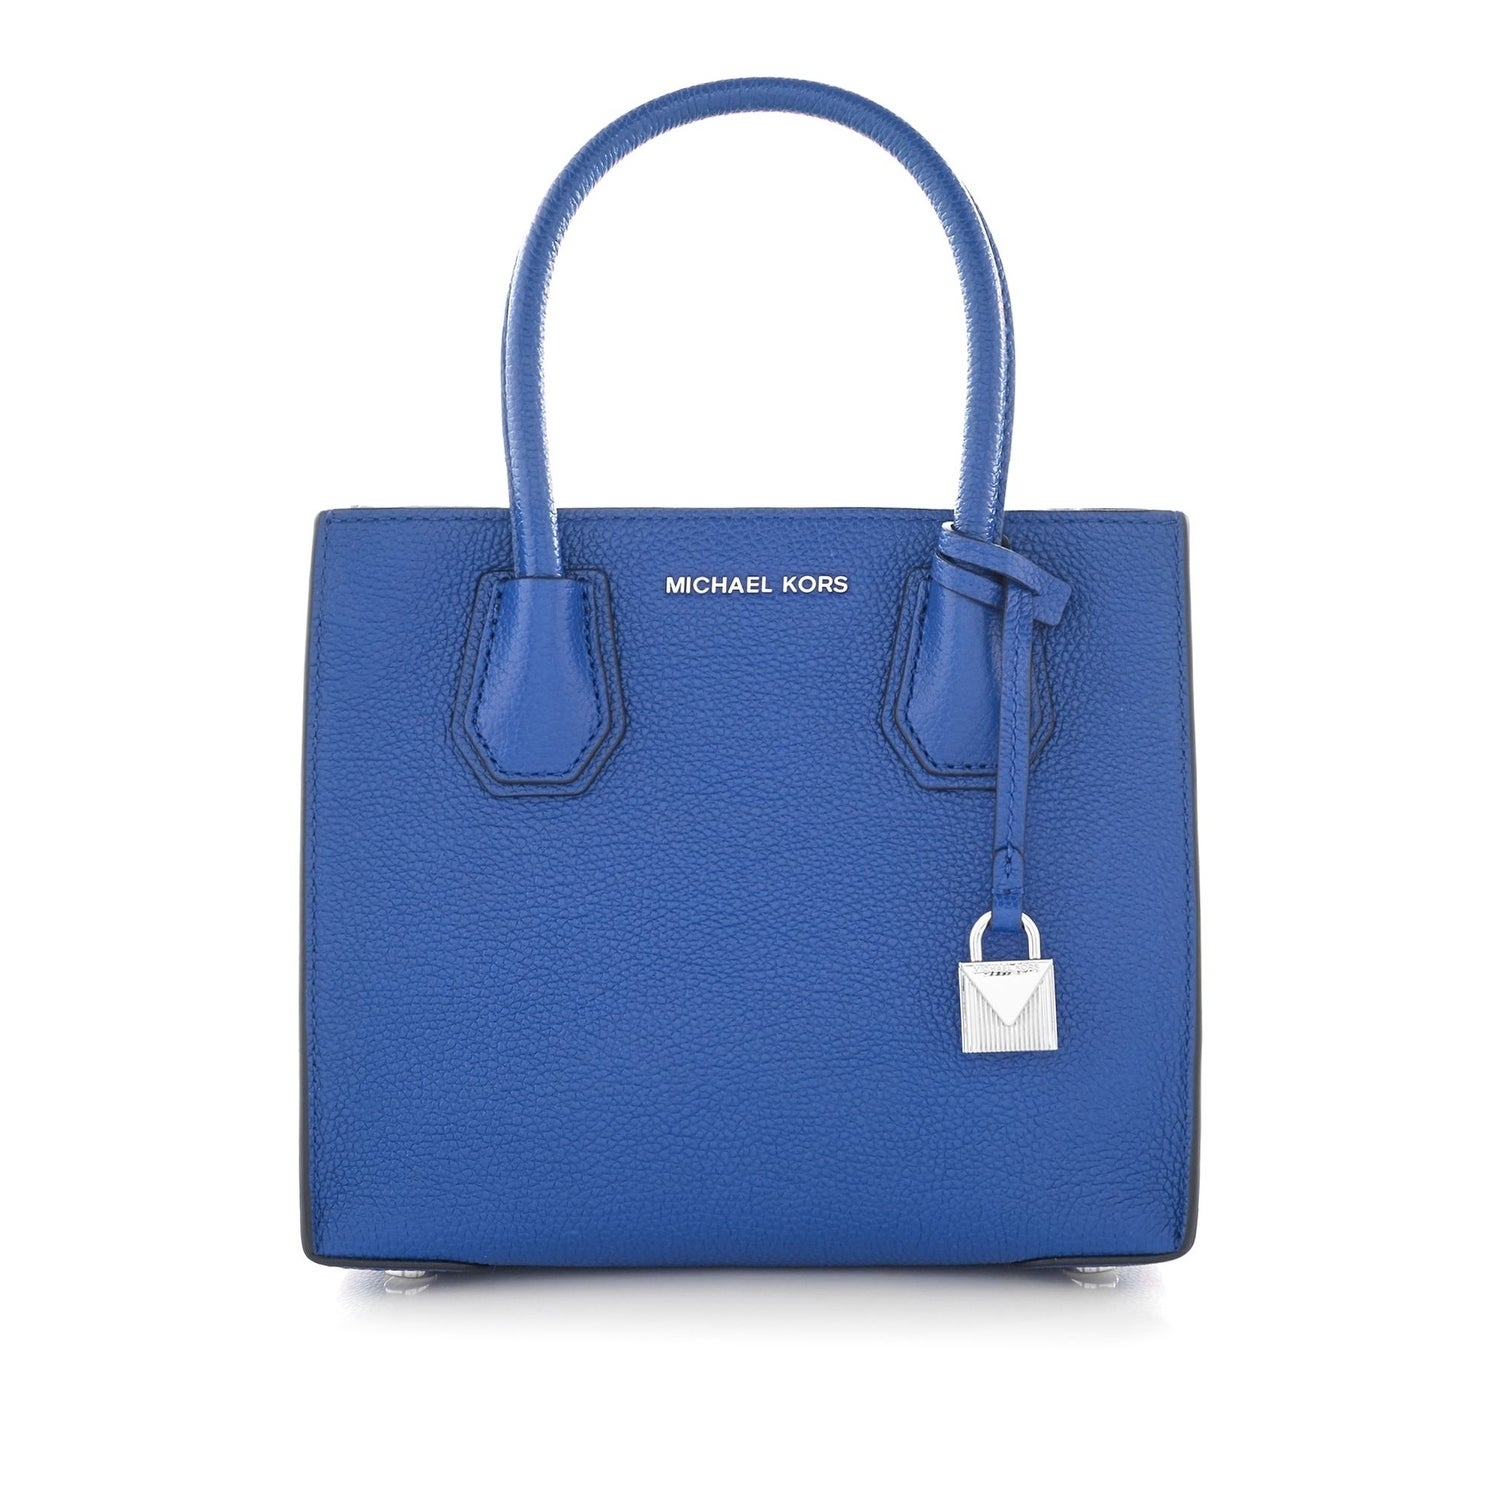 Buy Michael Kors Tote Bags Online at Overstock  f0258fc1dc8e1